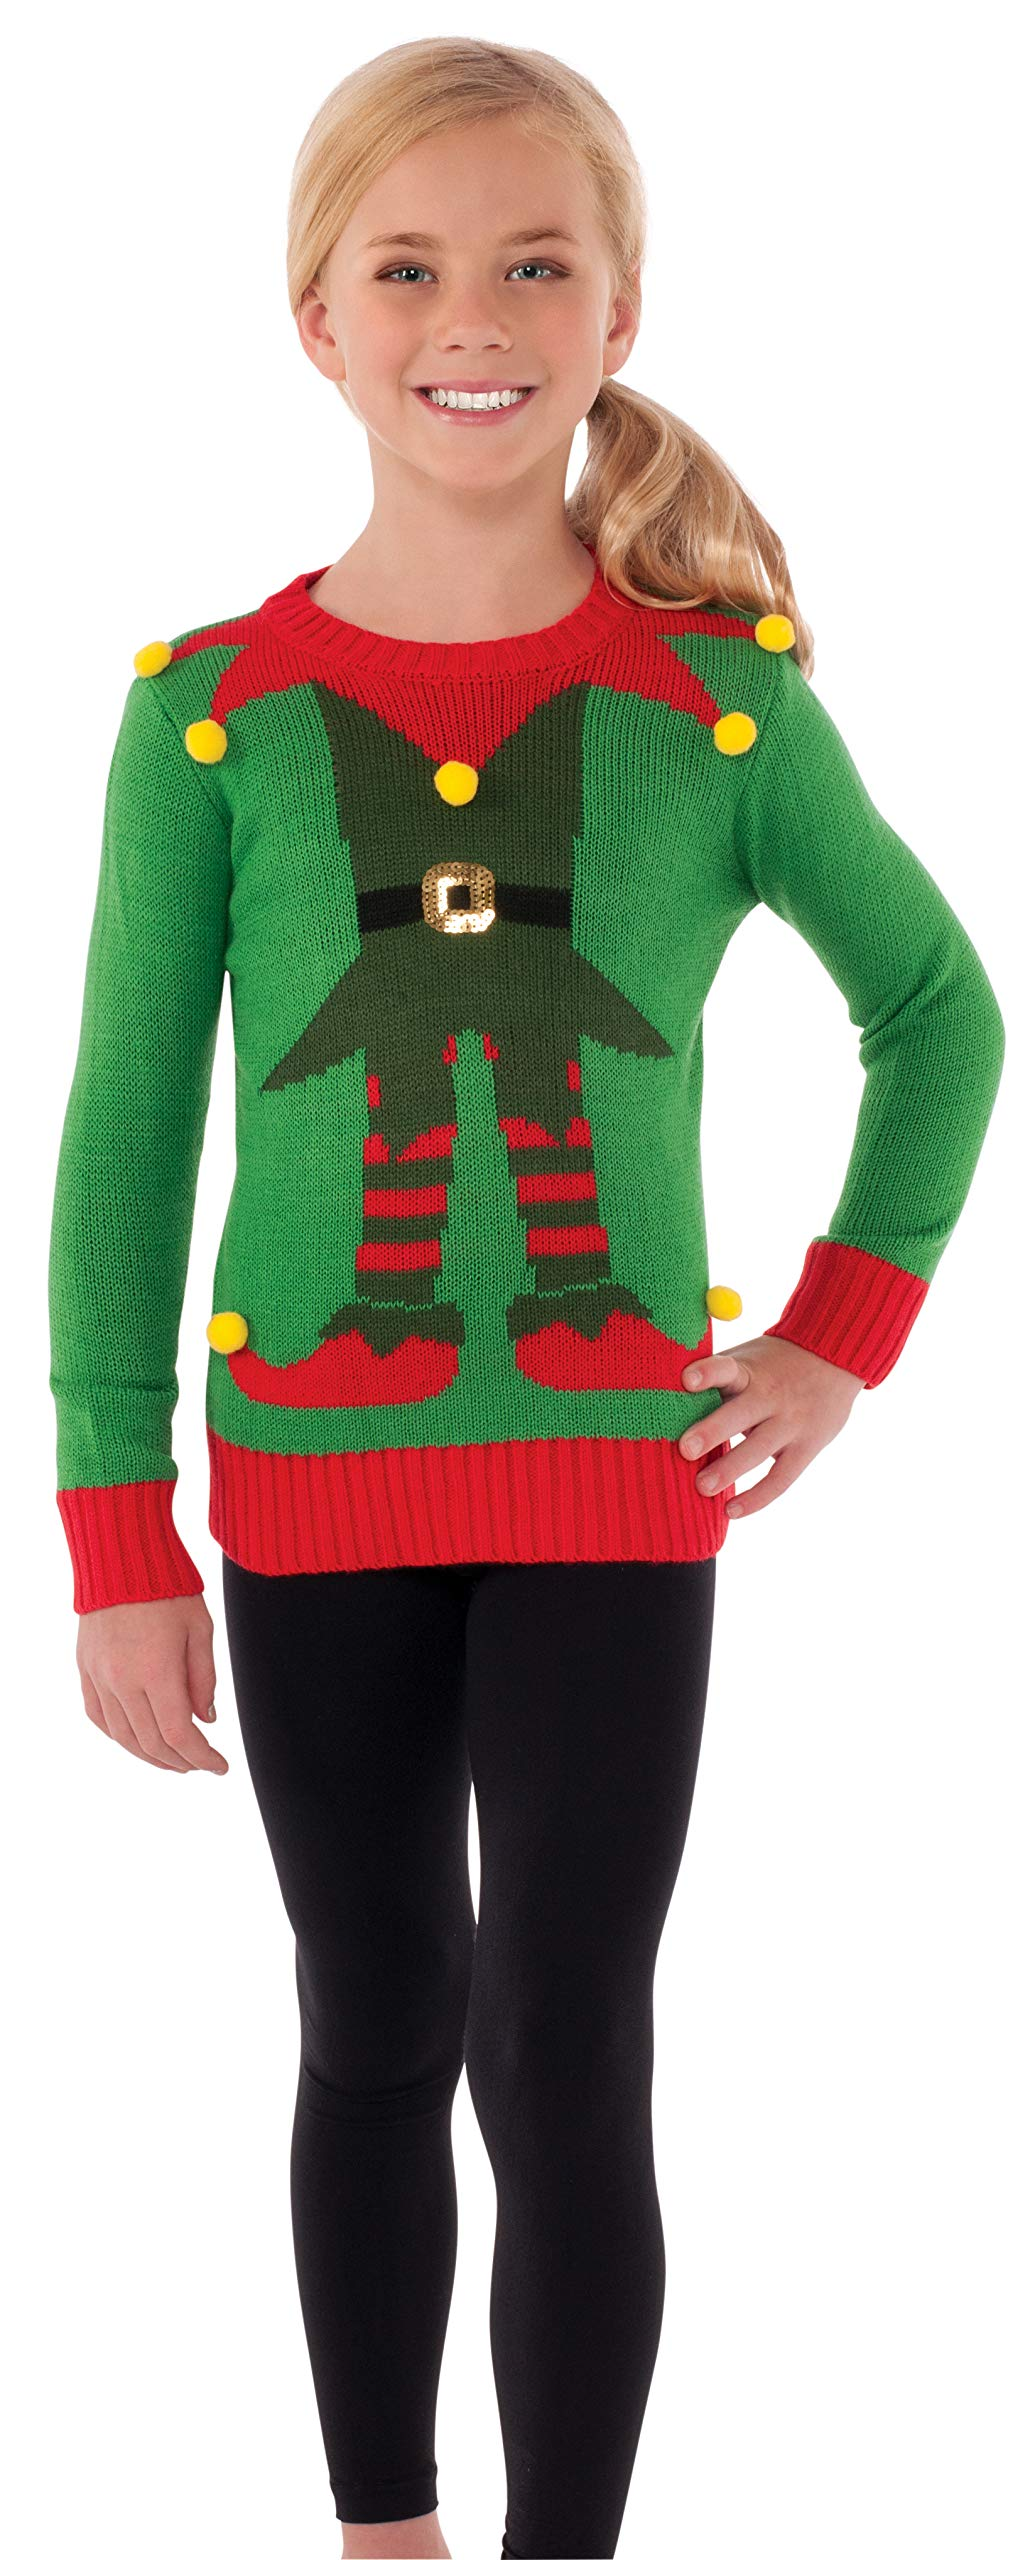 Rubie's Costume Green Elf Ugly Christmas Sweater Costume, One Color, Medium by Rubie's